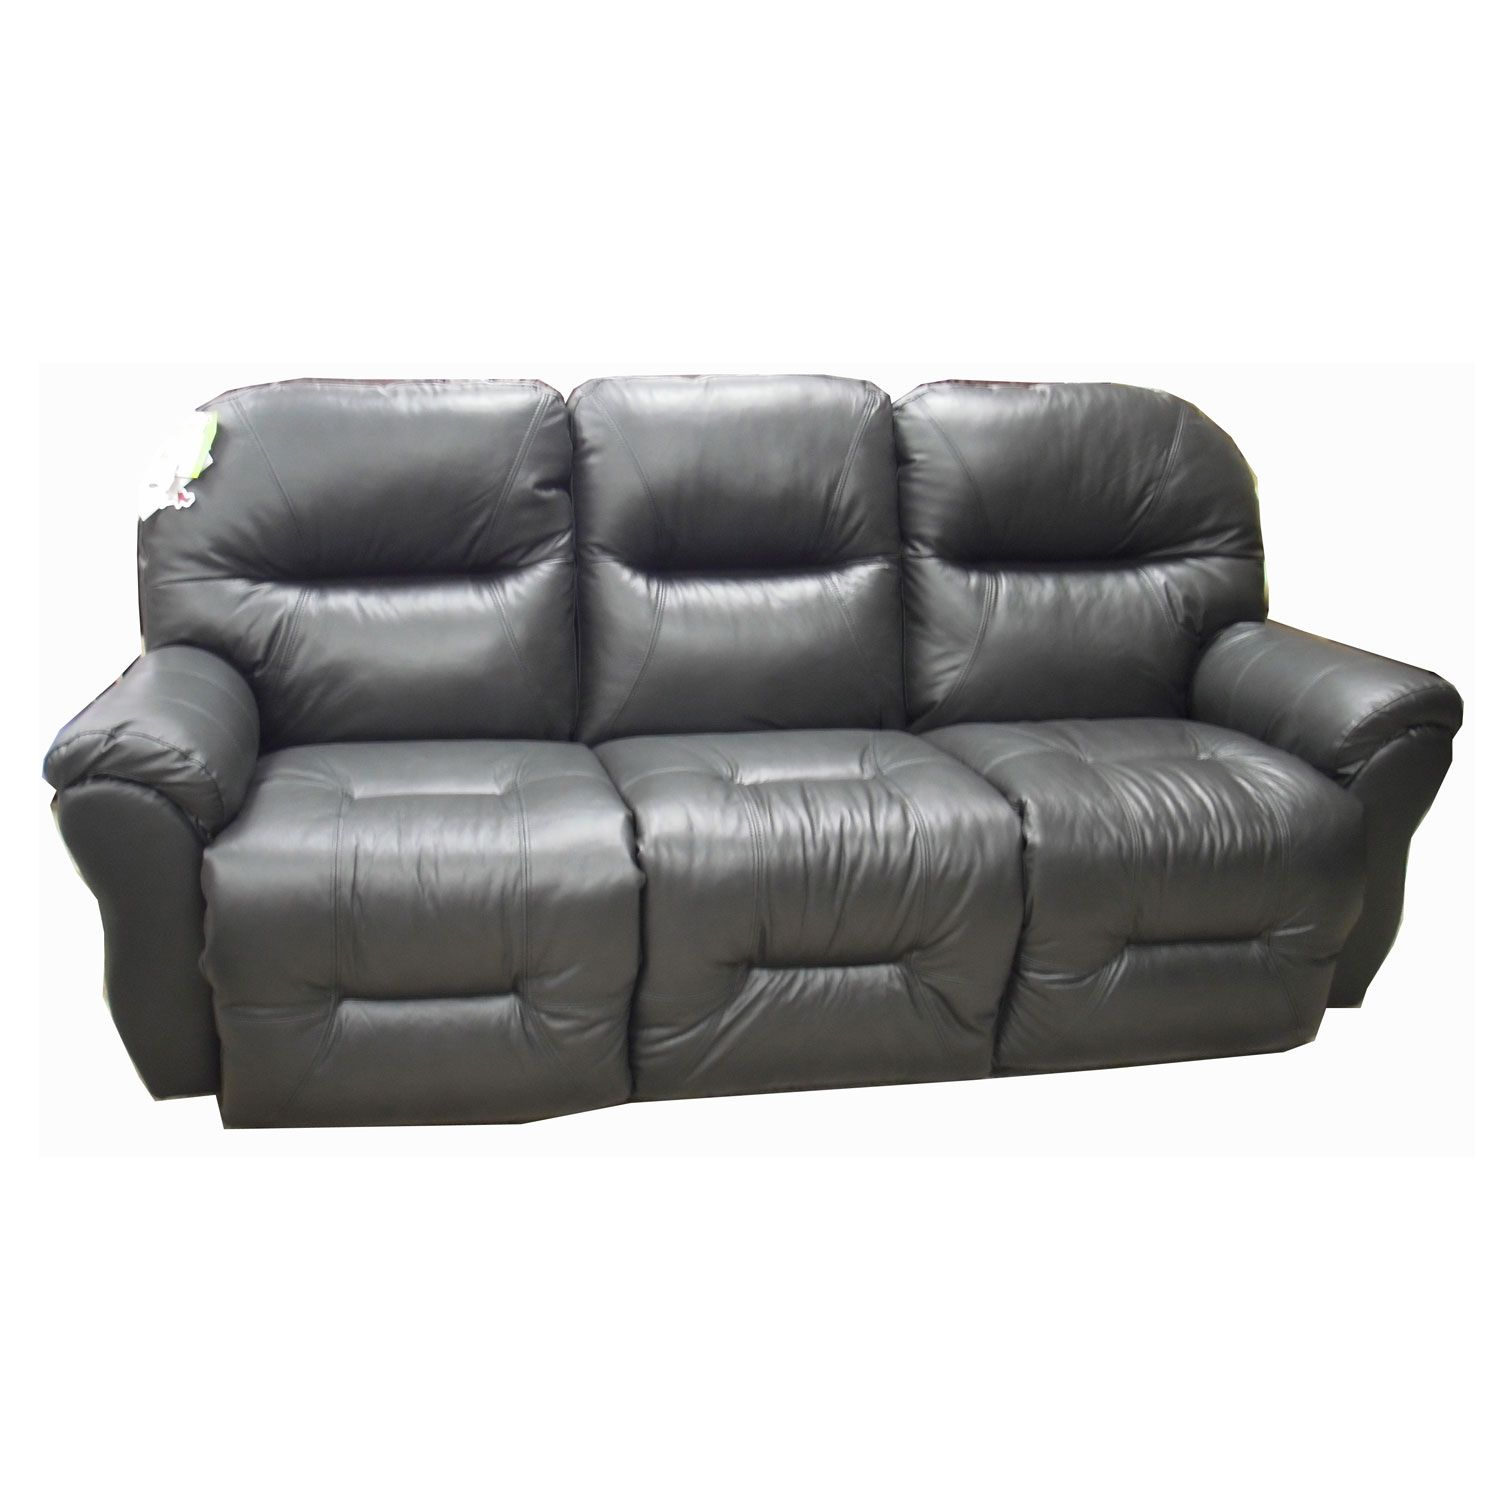 Best Bodie Leather Reclining Sofa, Style Number: S760CA4 Leather Cover Number: 73013-L Charcoal. Made in the USA!